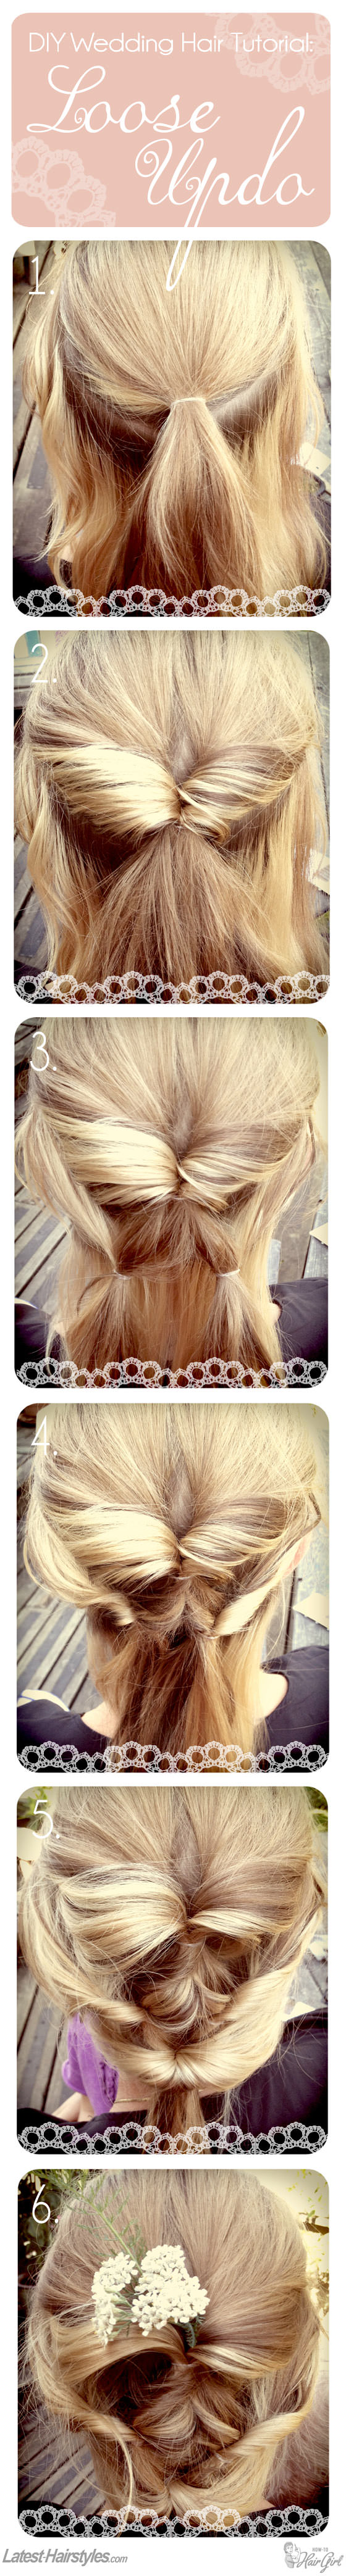 DIY Wedding Hair Tutorial: A Beautifully Loose Updo